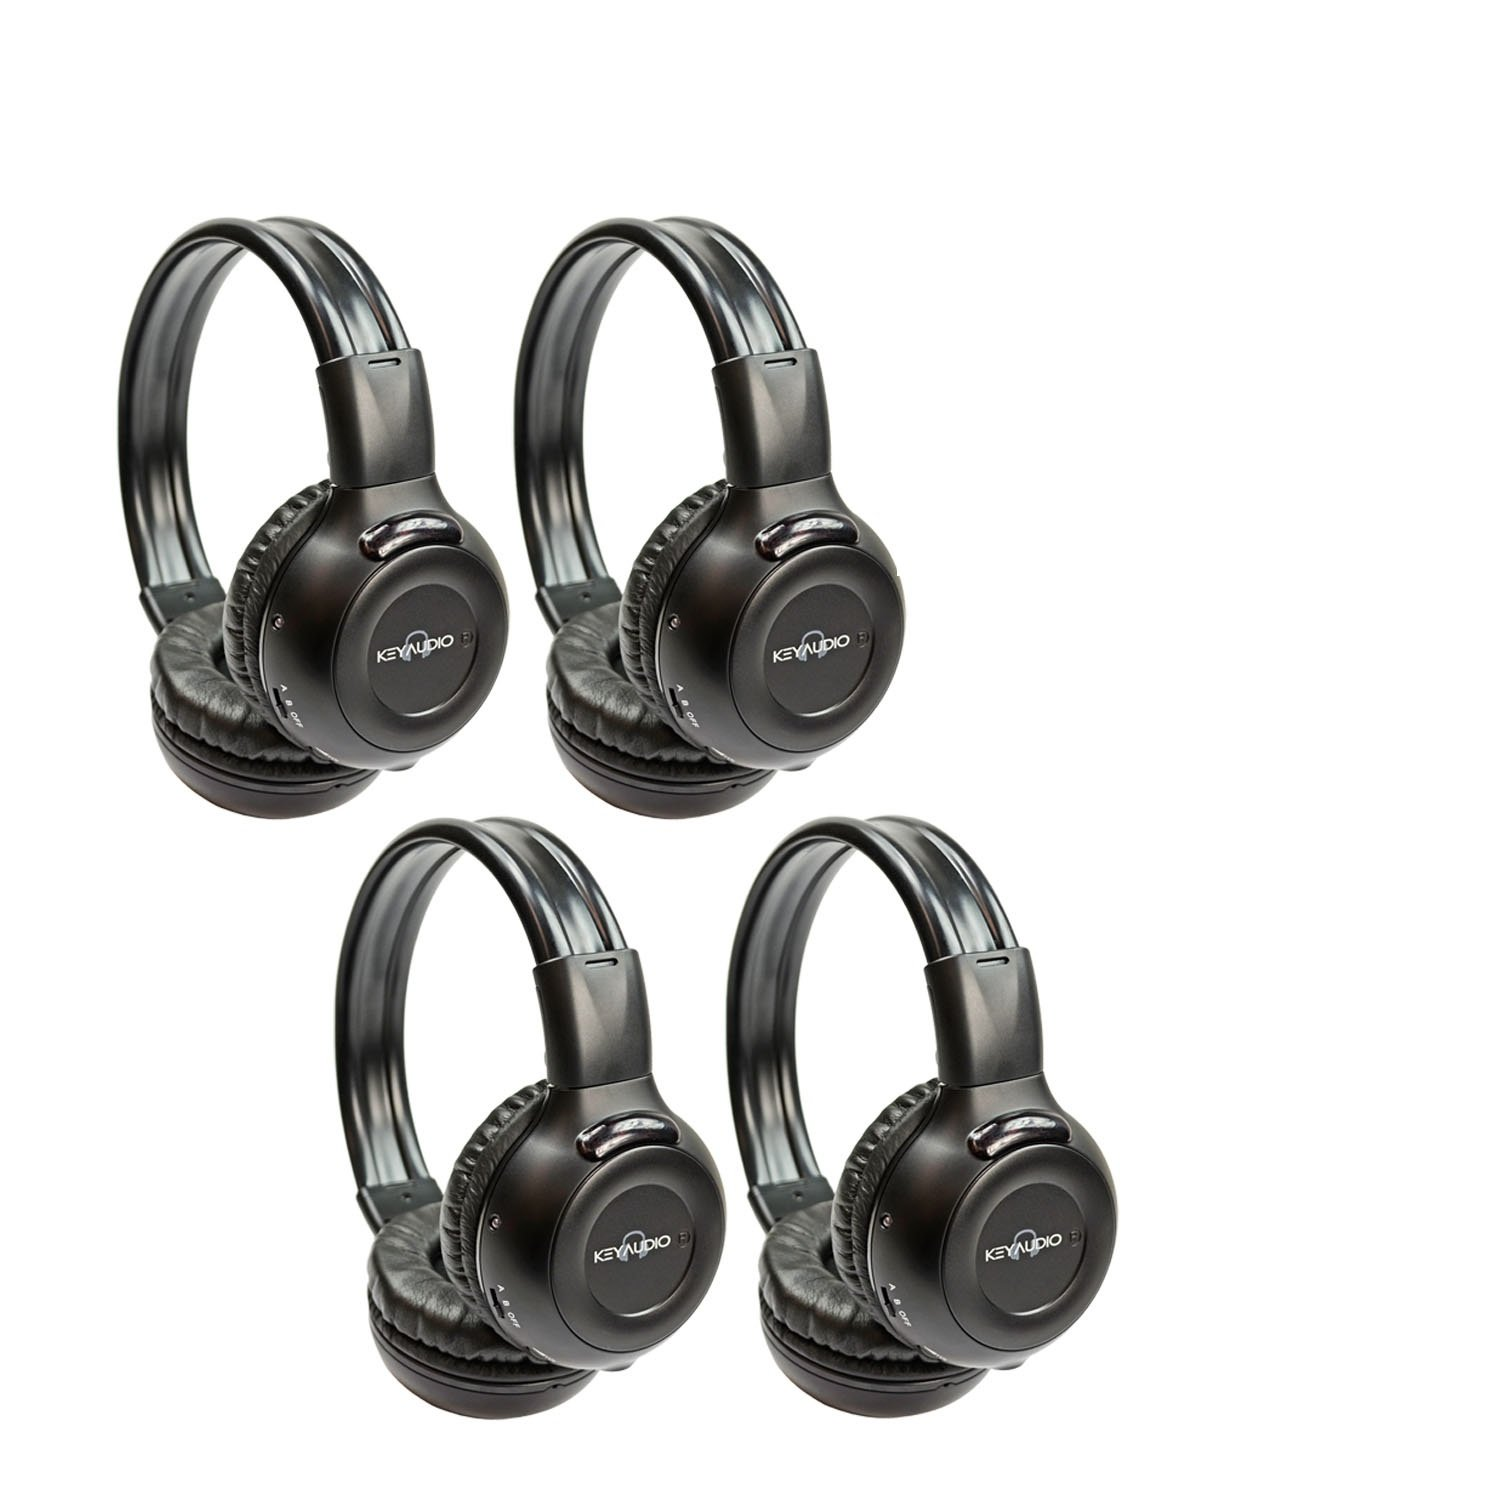 Four Pack of Two Channel Folding Adjustable Universal Rear Entertainment System Infrared Headphones With Four Additional 48'' 3.5mm Auxiliary Cords Wireless IR DVD Player Head Phones for in Car TV Video Audio Listening With Superior Sound Quality